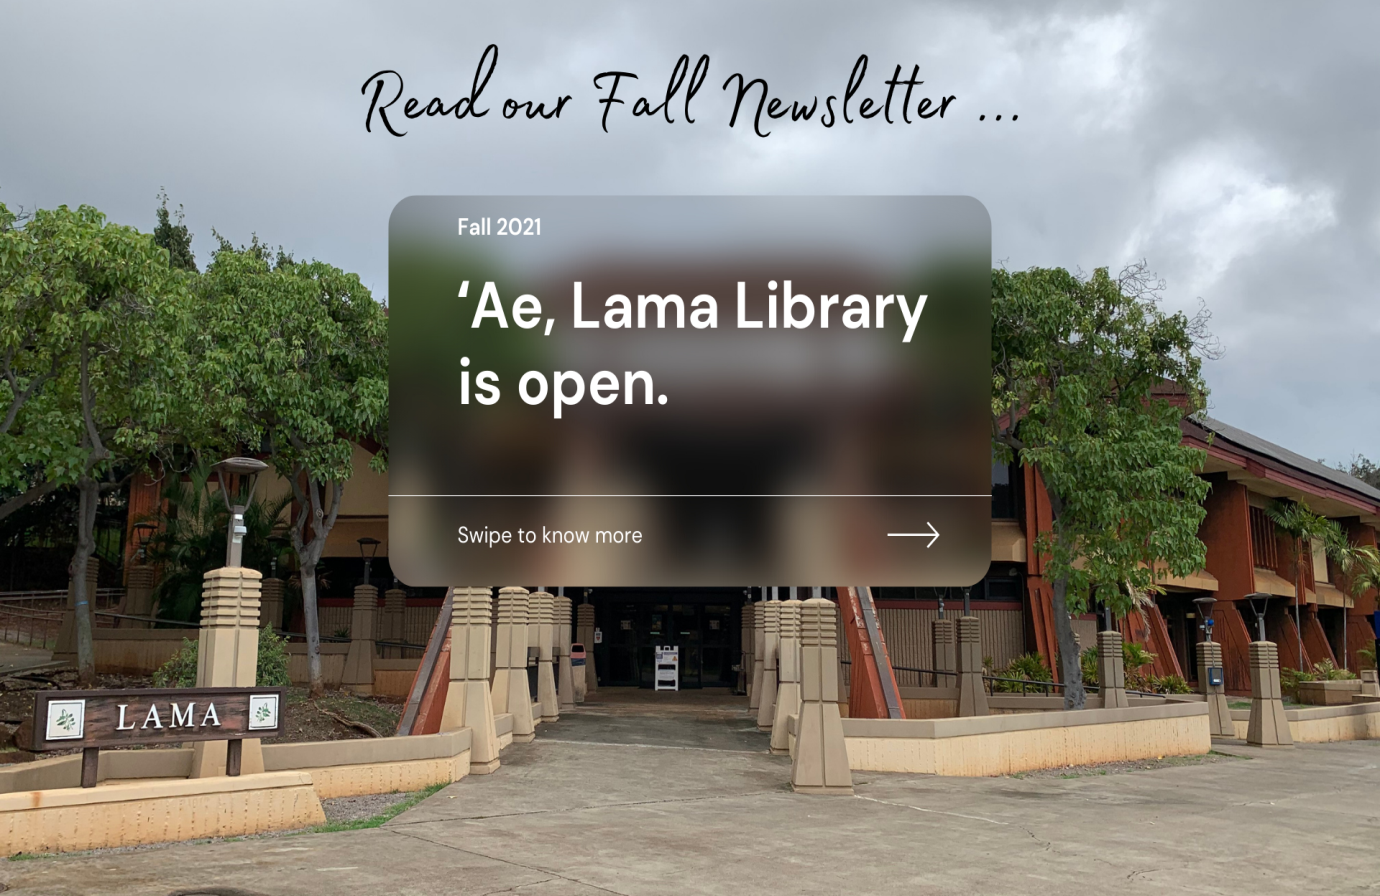 Lama building with text